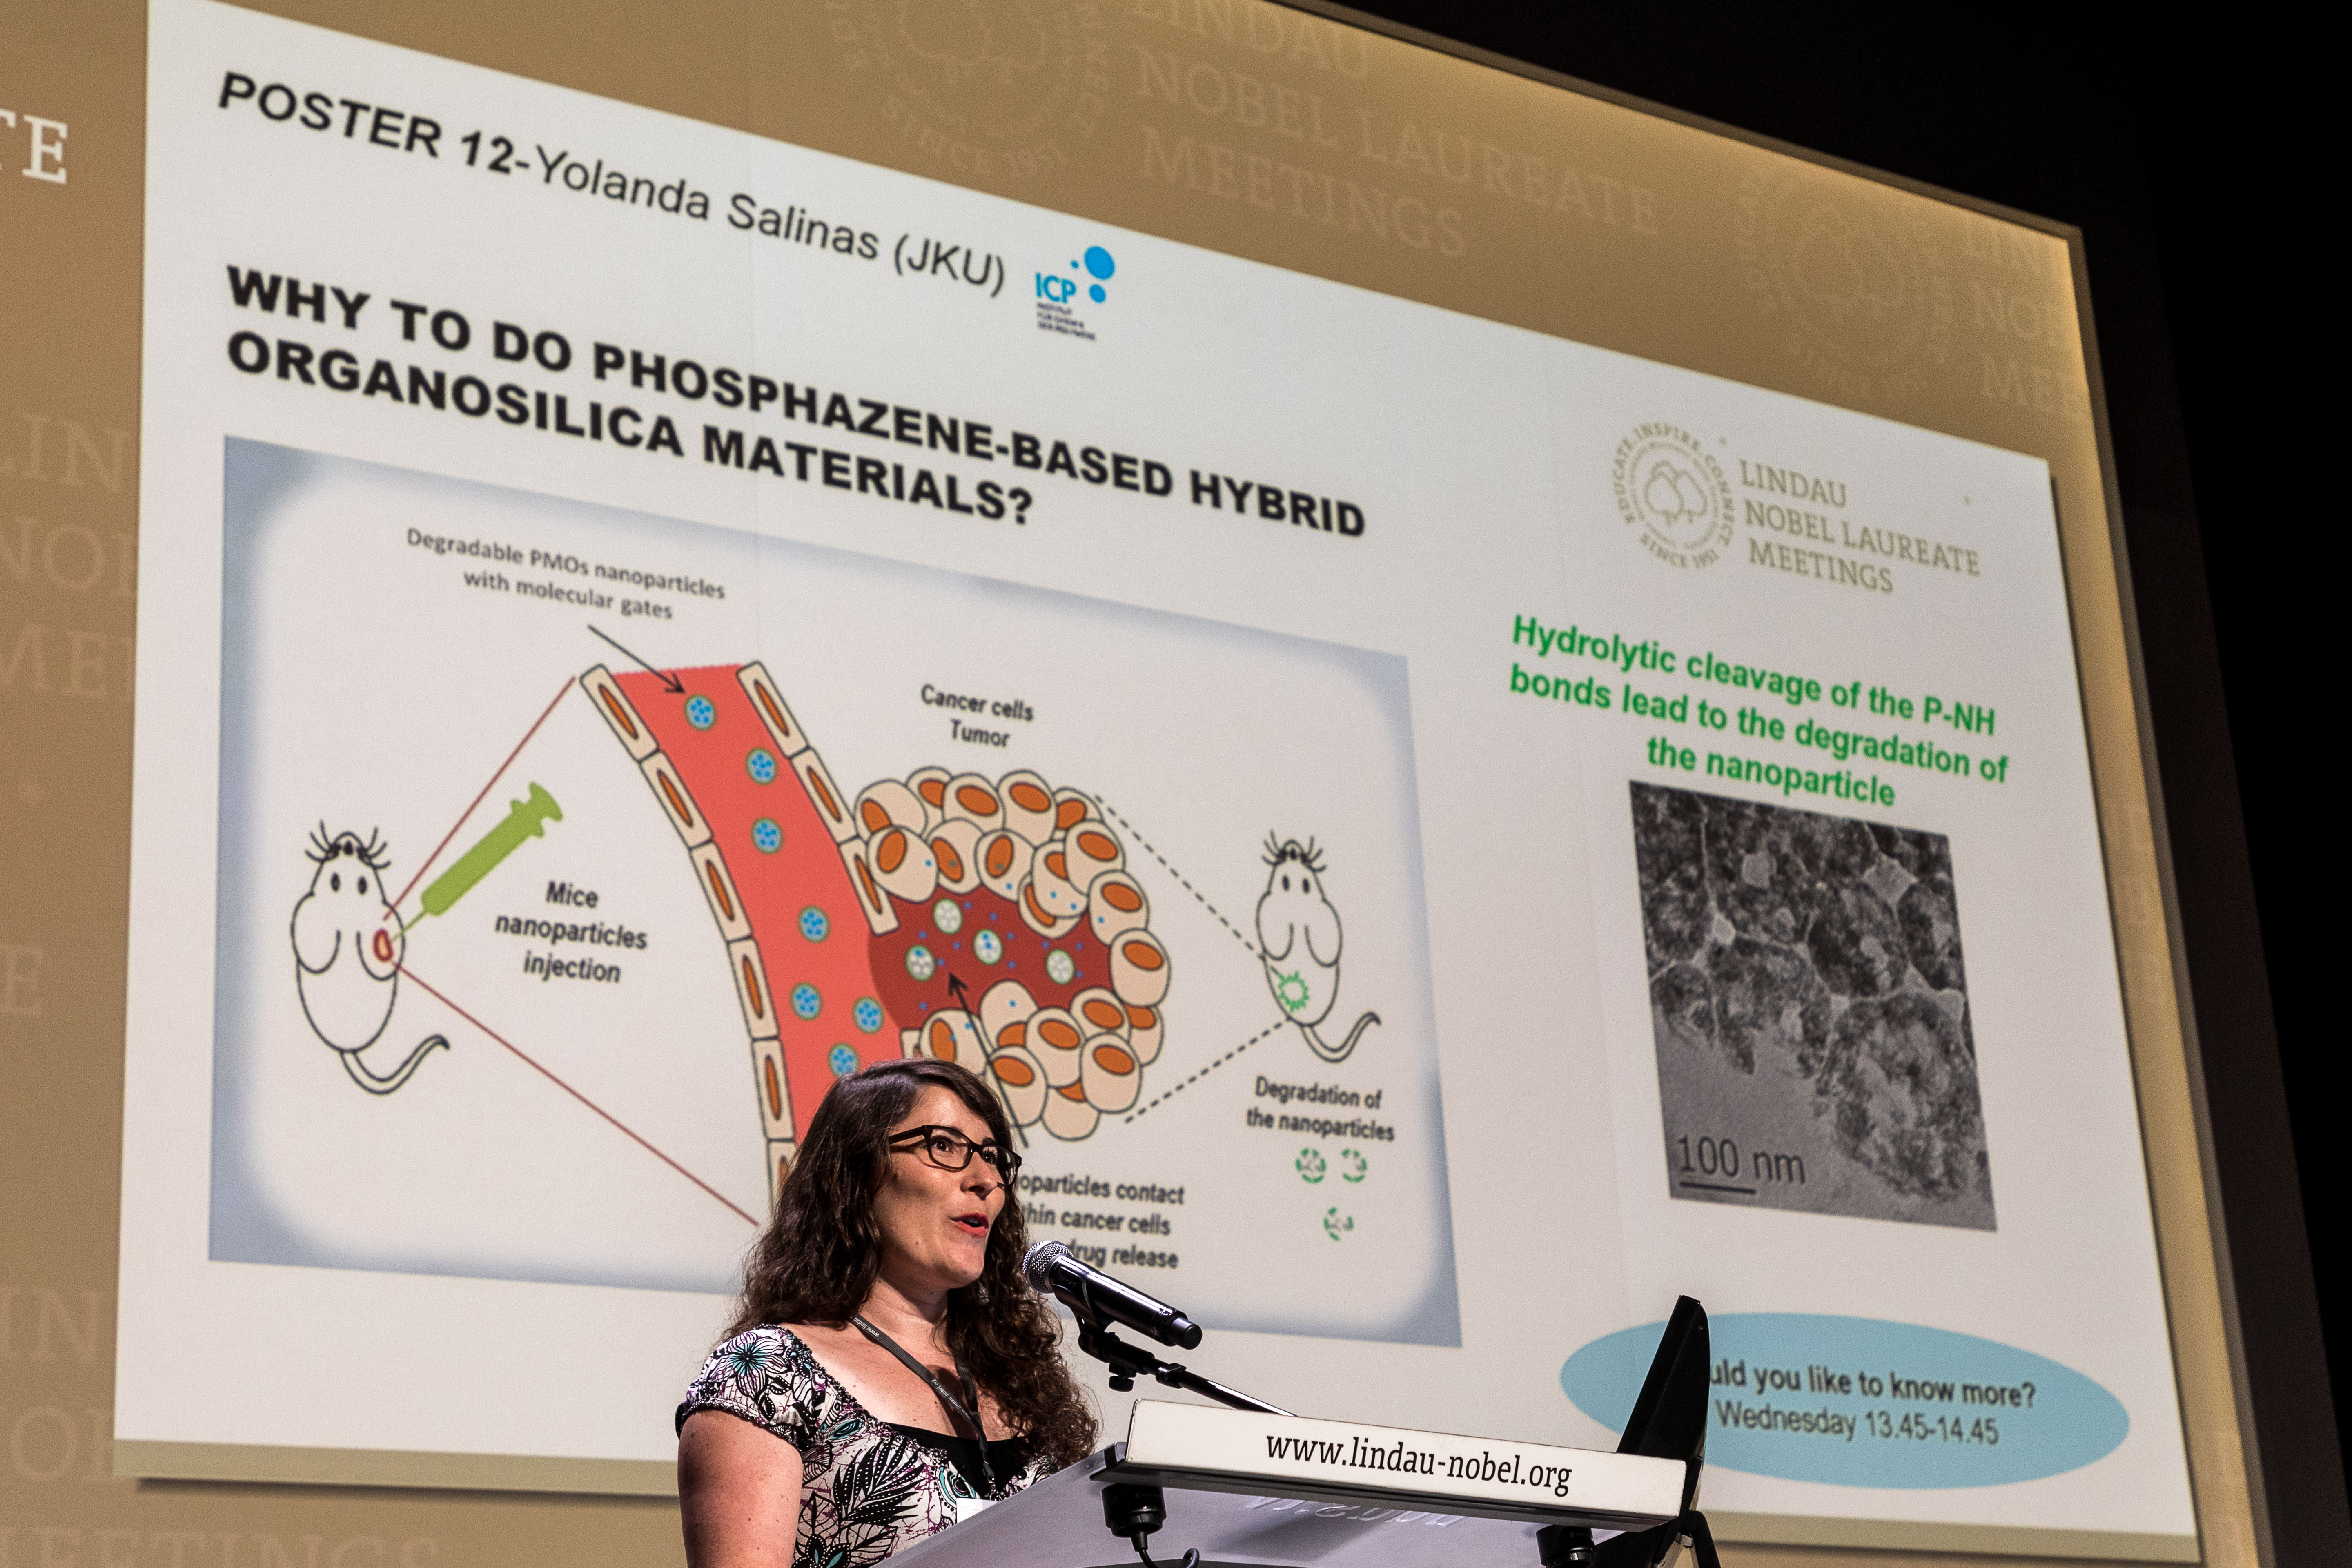 Yolanda Salinas presenting her research at the Poster Flashes, 67th Lindau Nobel Laureate Meeting (Chemistry), 25.06.2017 - 30.06.2017, Lindau, Germany, Picture/Credit: Christian Flemming/Lindau Nobel Laureate Meetings